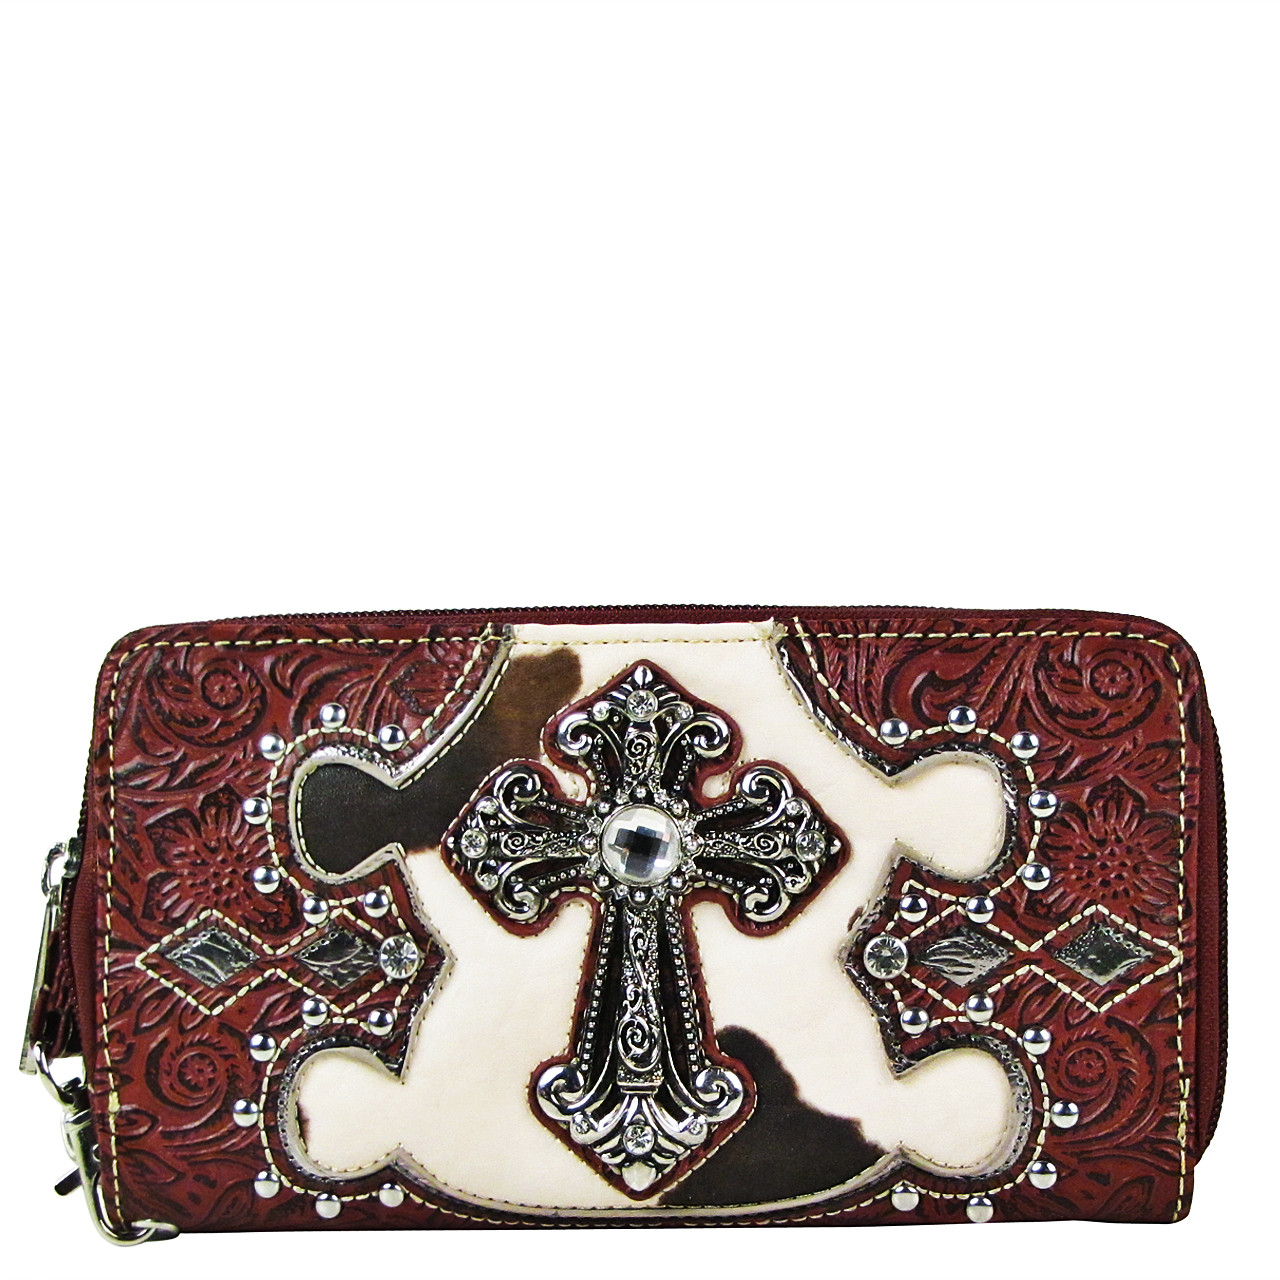 RED COW RHINESTONE CROSS LOOK ZIPPER WALLET CB3-0406RED